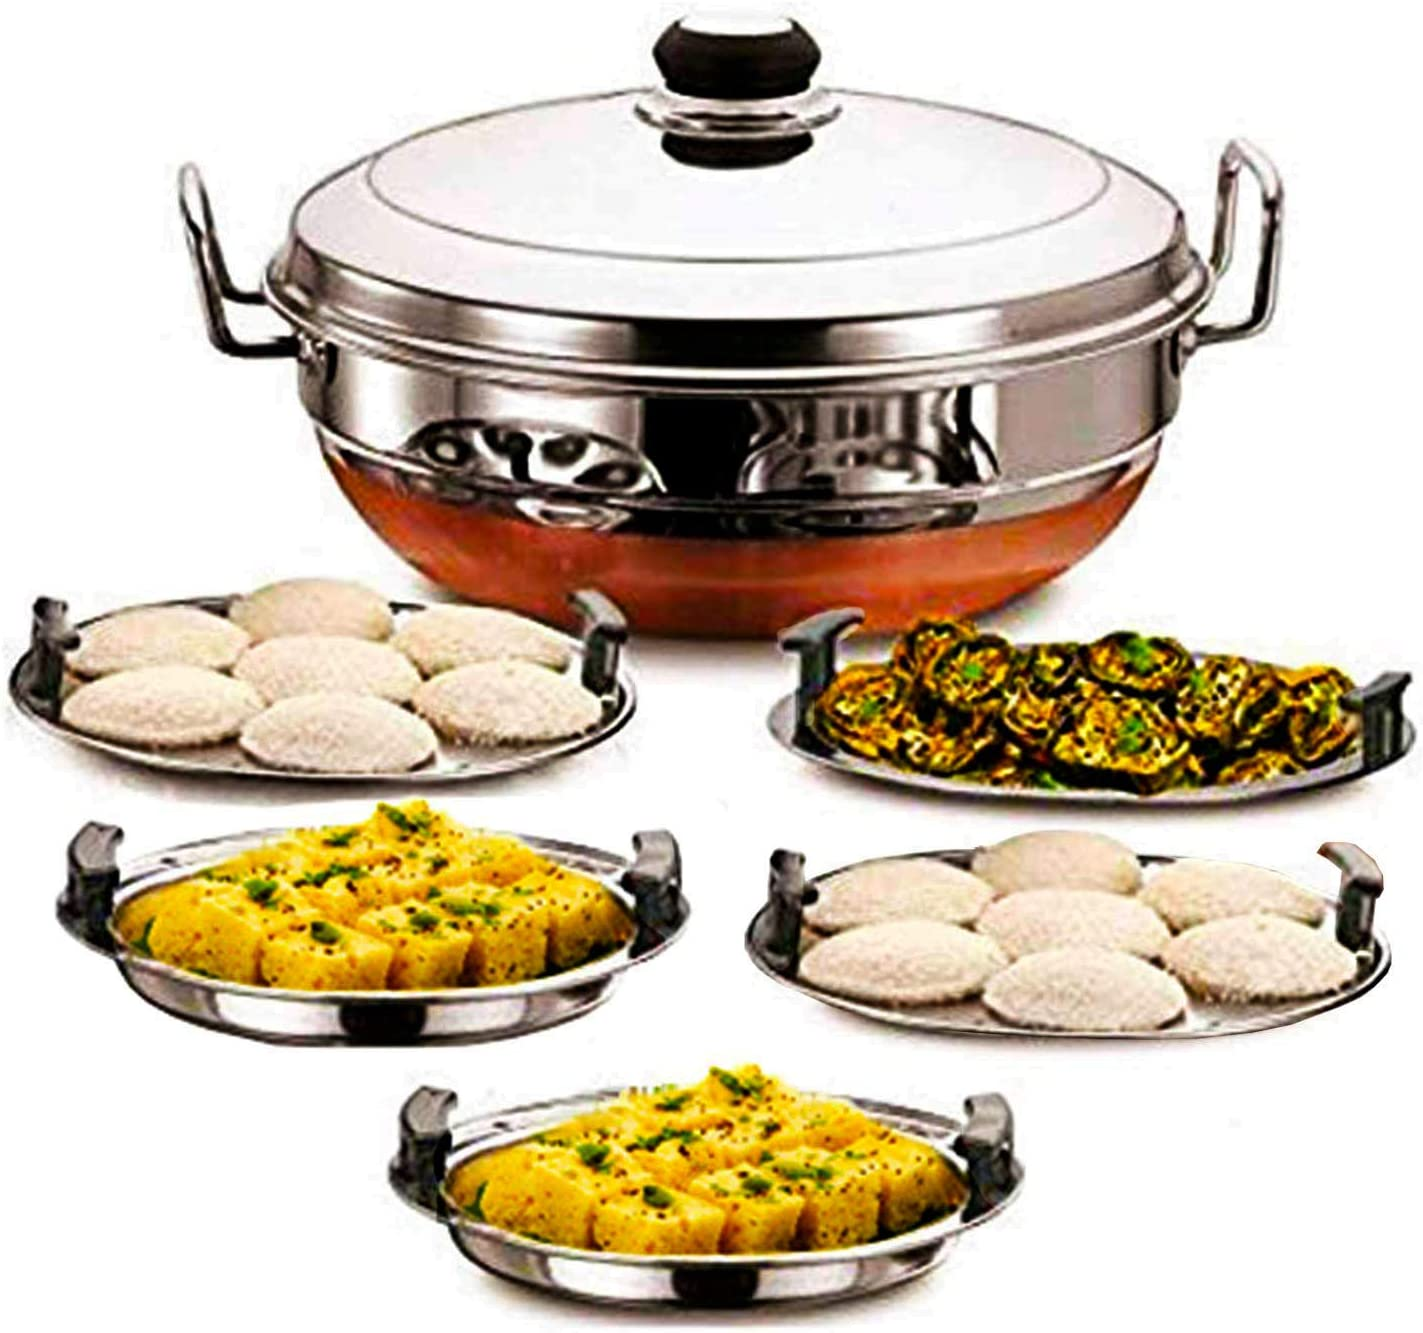 Ecom Stainless Steel Idli Cooker Multi Kadai Steamer with Copper Bottom All-in-One Big Size 5 Plate 2 Idli | 2 Dhokla | 1 Patra | Momo's